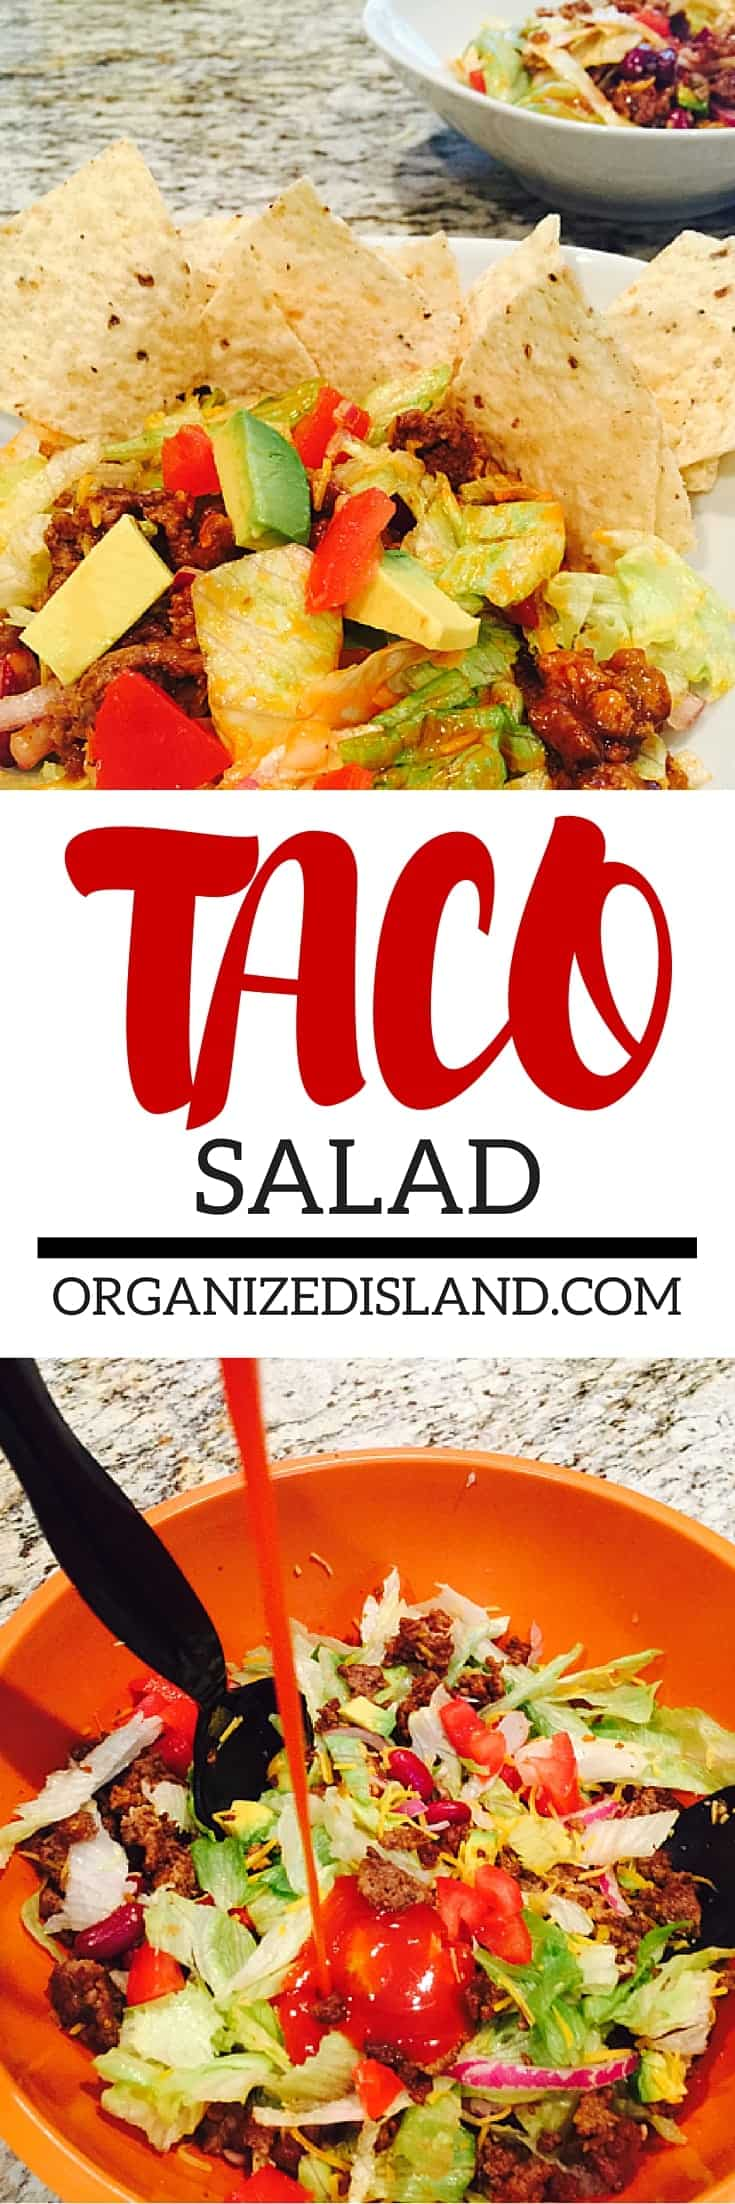 This easy and tasty taco salad is a great way to use farmers' market produce into your meal and you can make it ahead of time too!